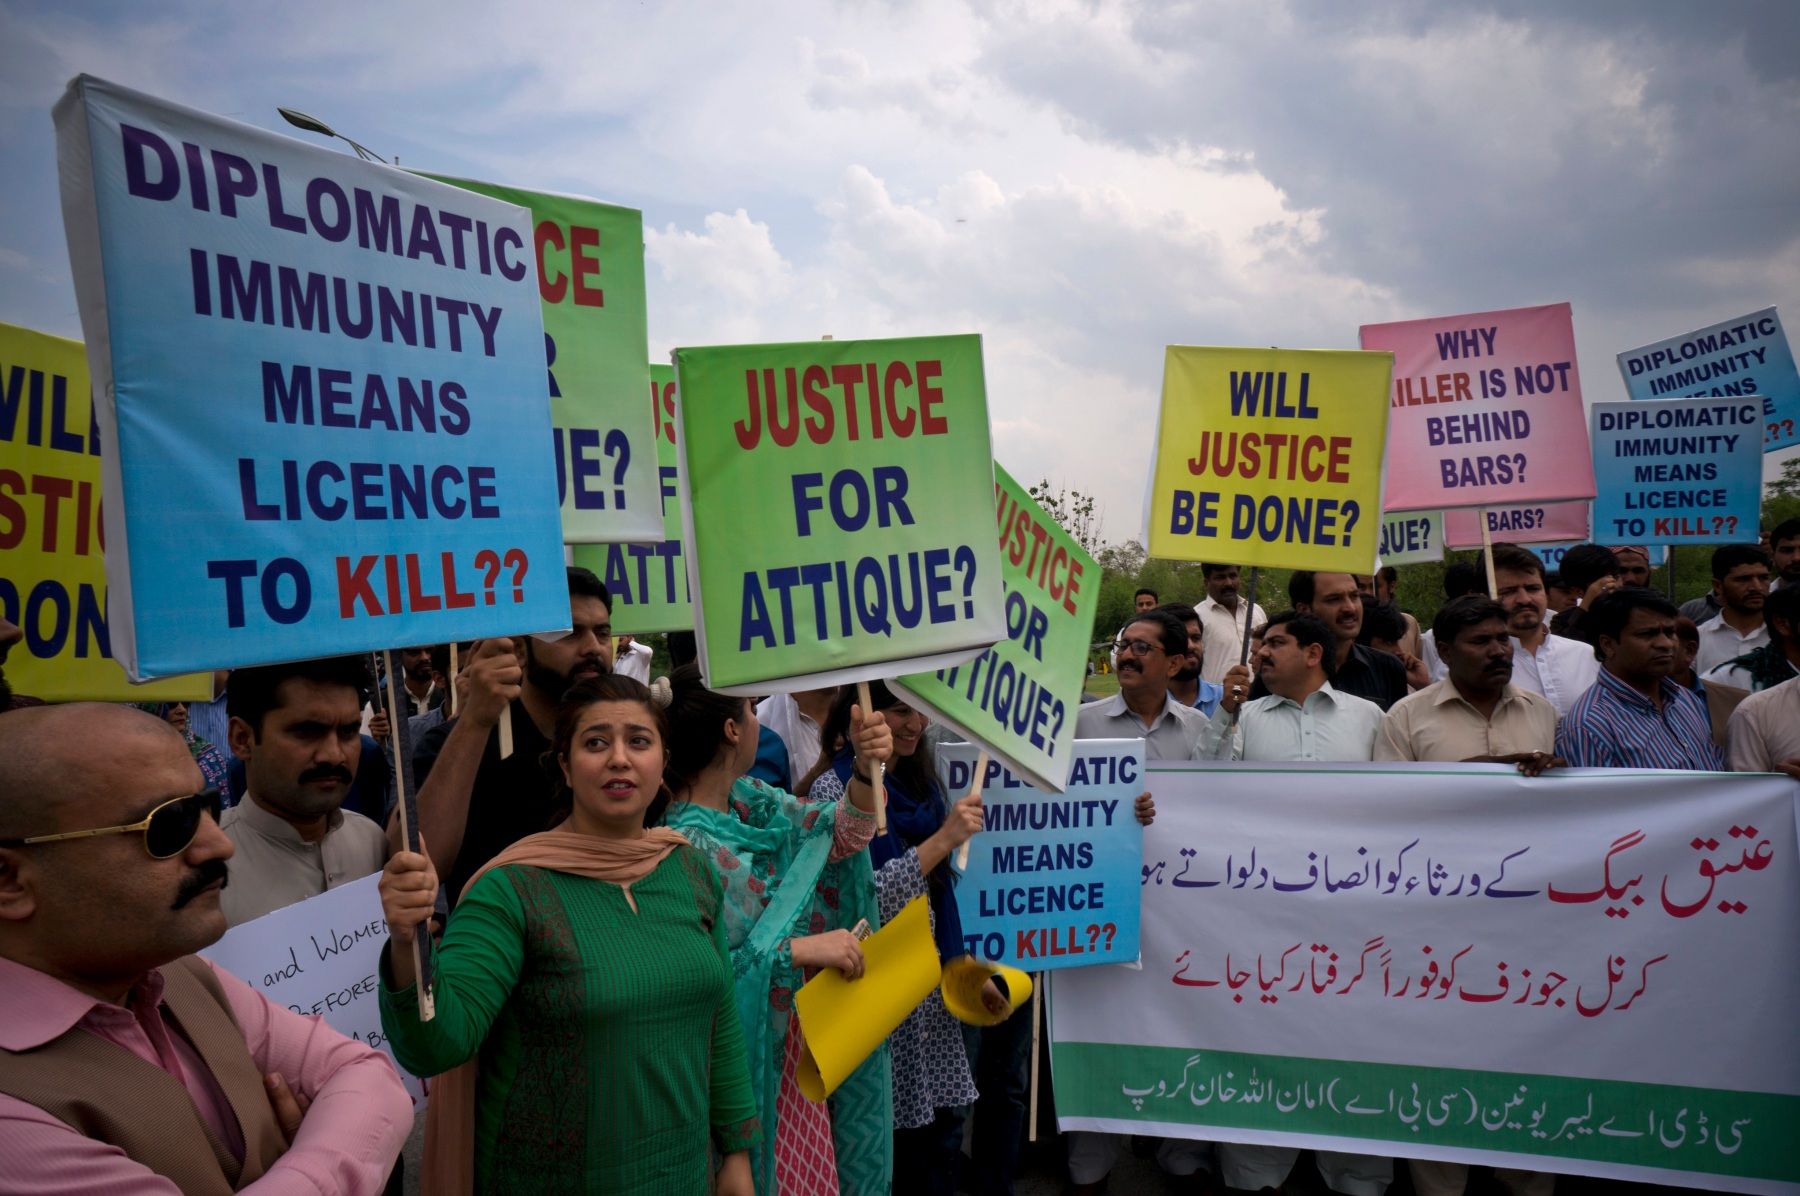 "Pakistani protesters stage a rally demanding a trial for American diplomat involved in a vehicle crash that killed a person, in Islamabad, Pakistan, Tuesday, April 10, 2018. Police have requested the government impose a travel ban on an American diplomat involved in a vehicle crash over the weekend that killed one Pakistani man and injured another in the capital Islamabad. Banner reads ""give justice to the family of Ateeq Baig, arrest Col. Joseph."" (AP Photo/B.K. Bangash)"